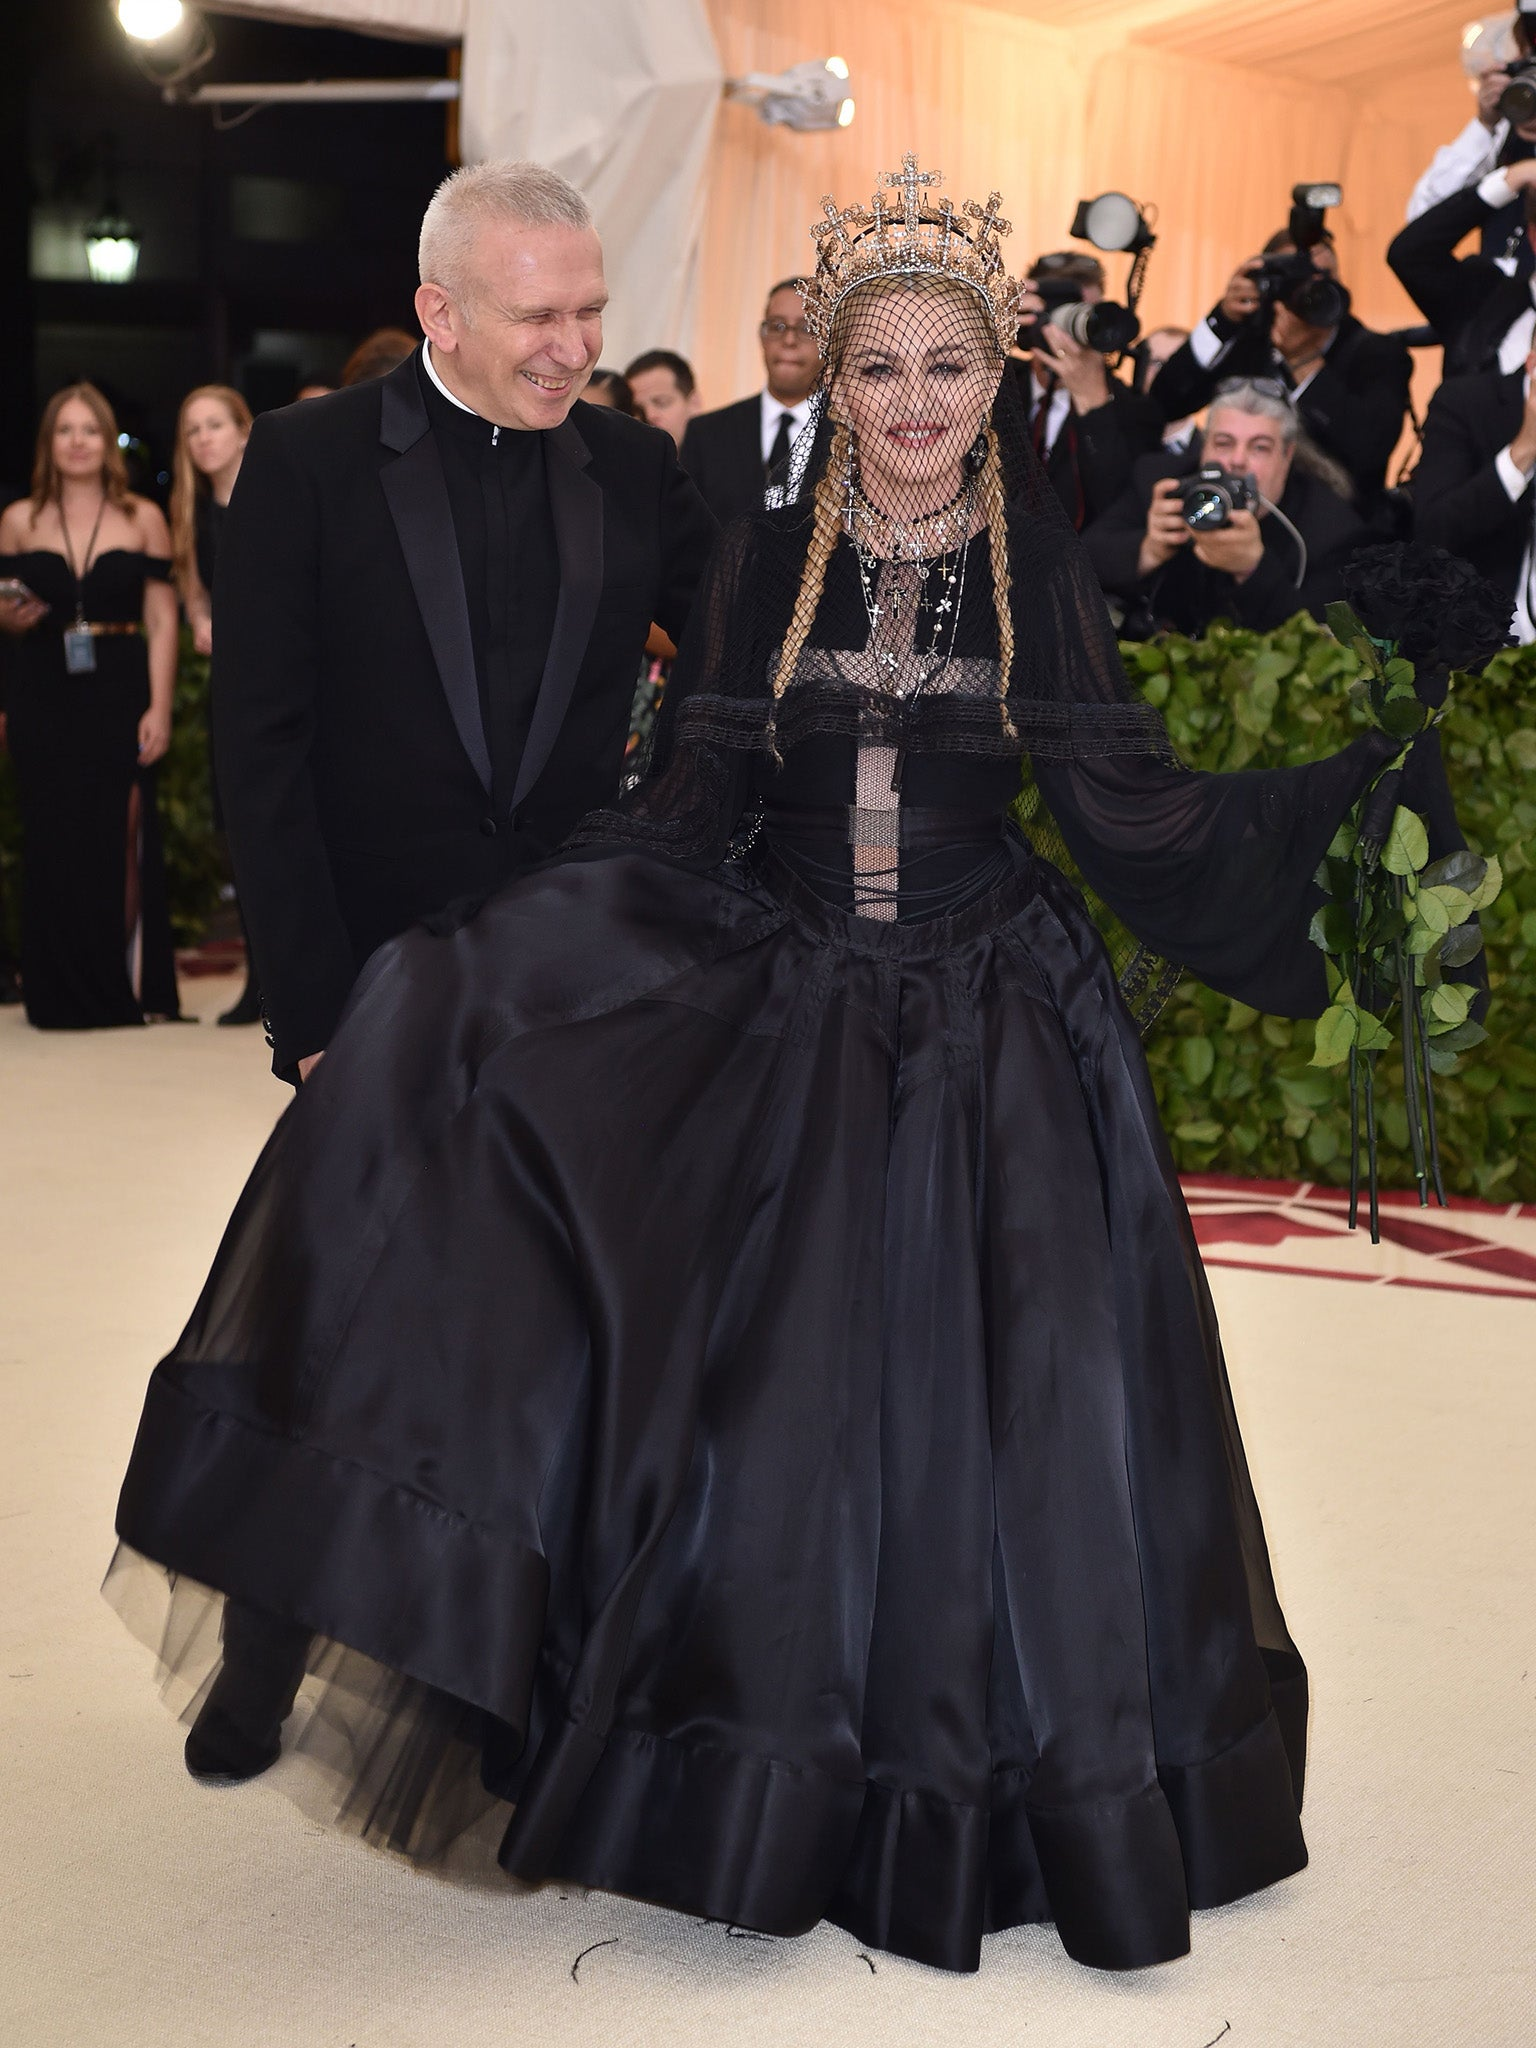 Met Gala: 5 weird rules for guests to follow at annual